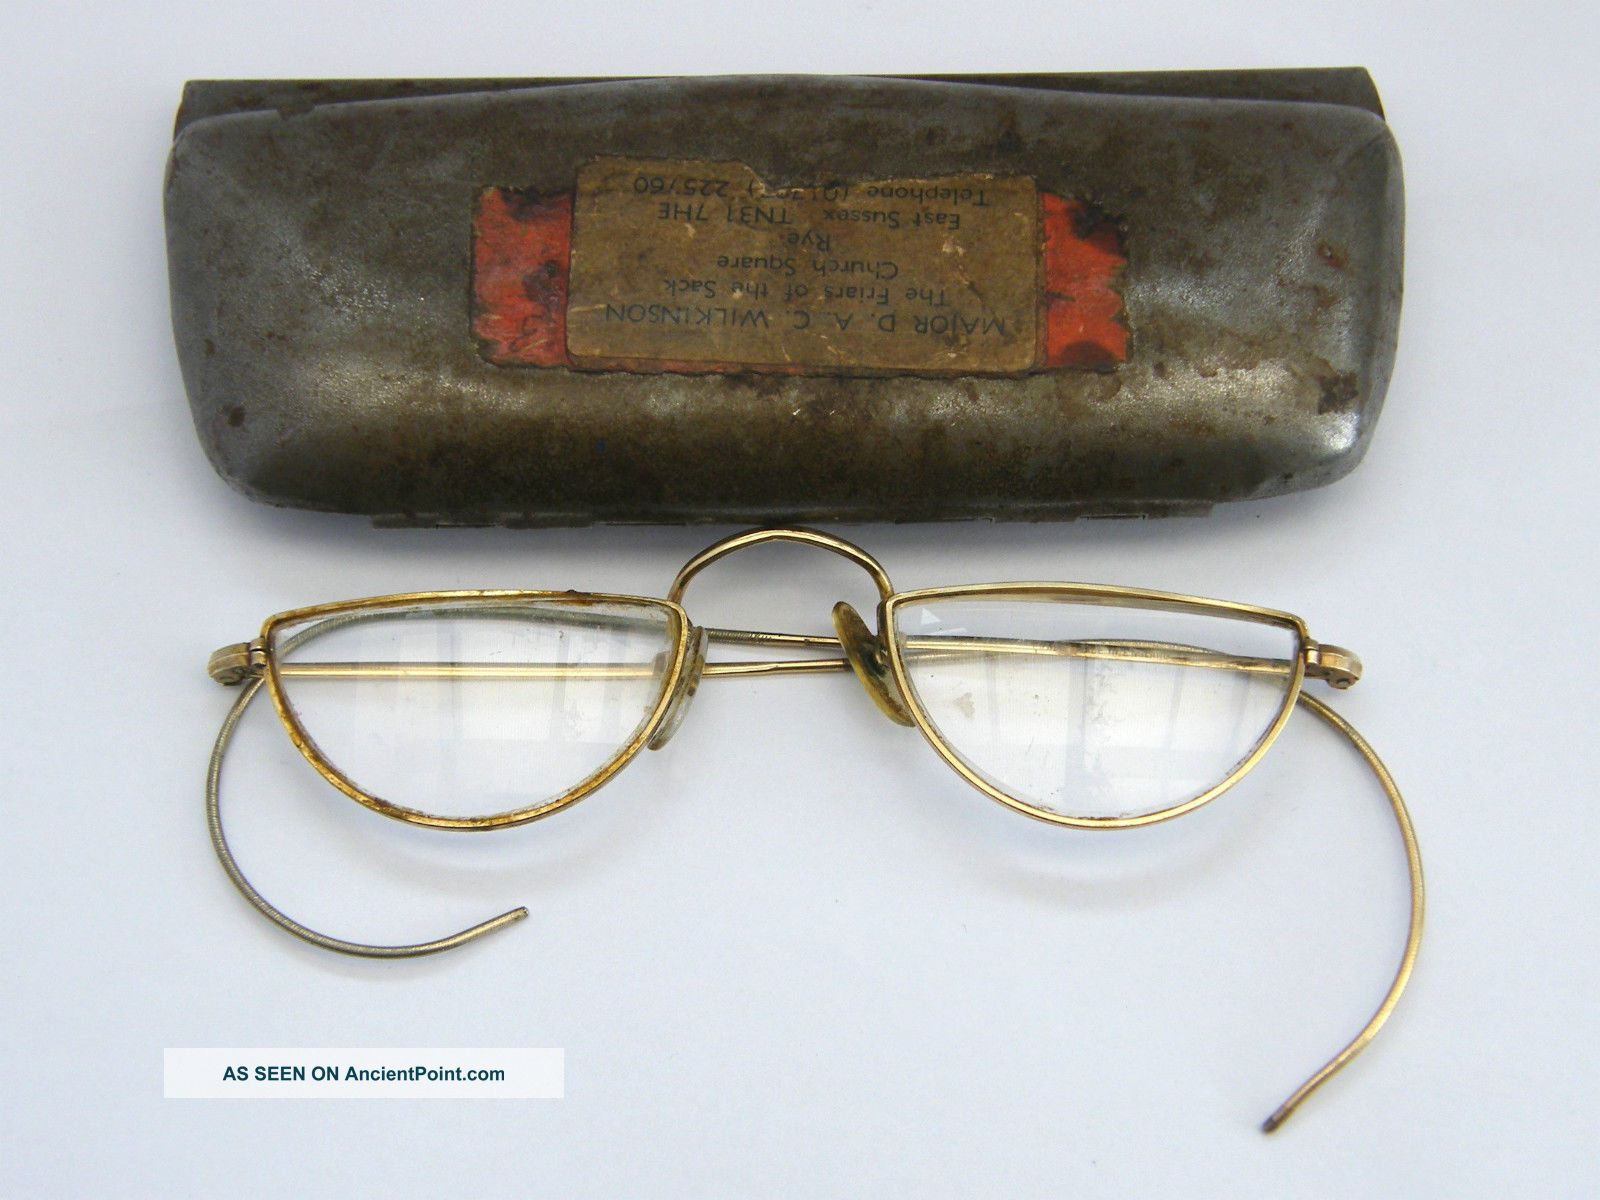 Antique - Gold Plated Half Moon Spectacles - Cased - Friars Of The Sack - C1910 Other Antique Science Equip photo